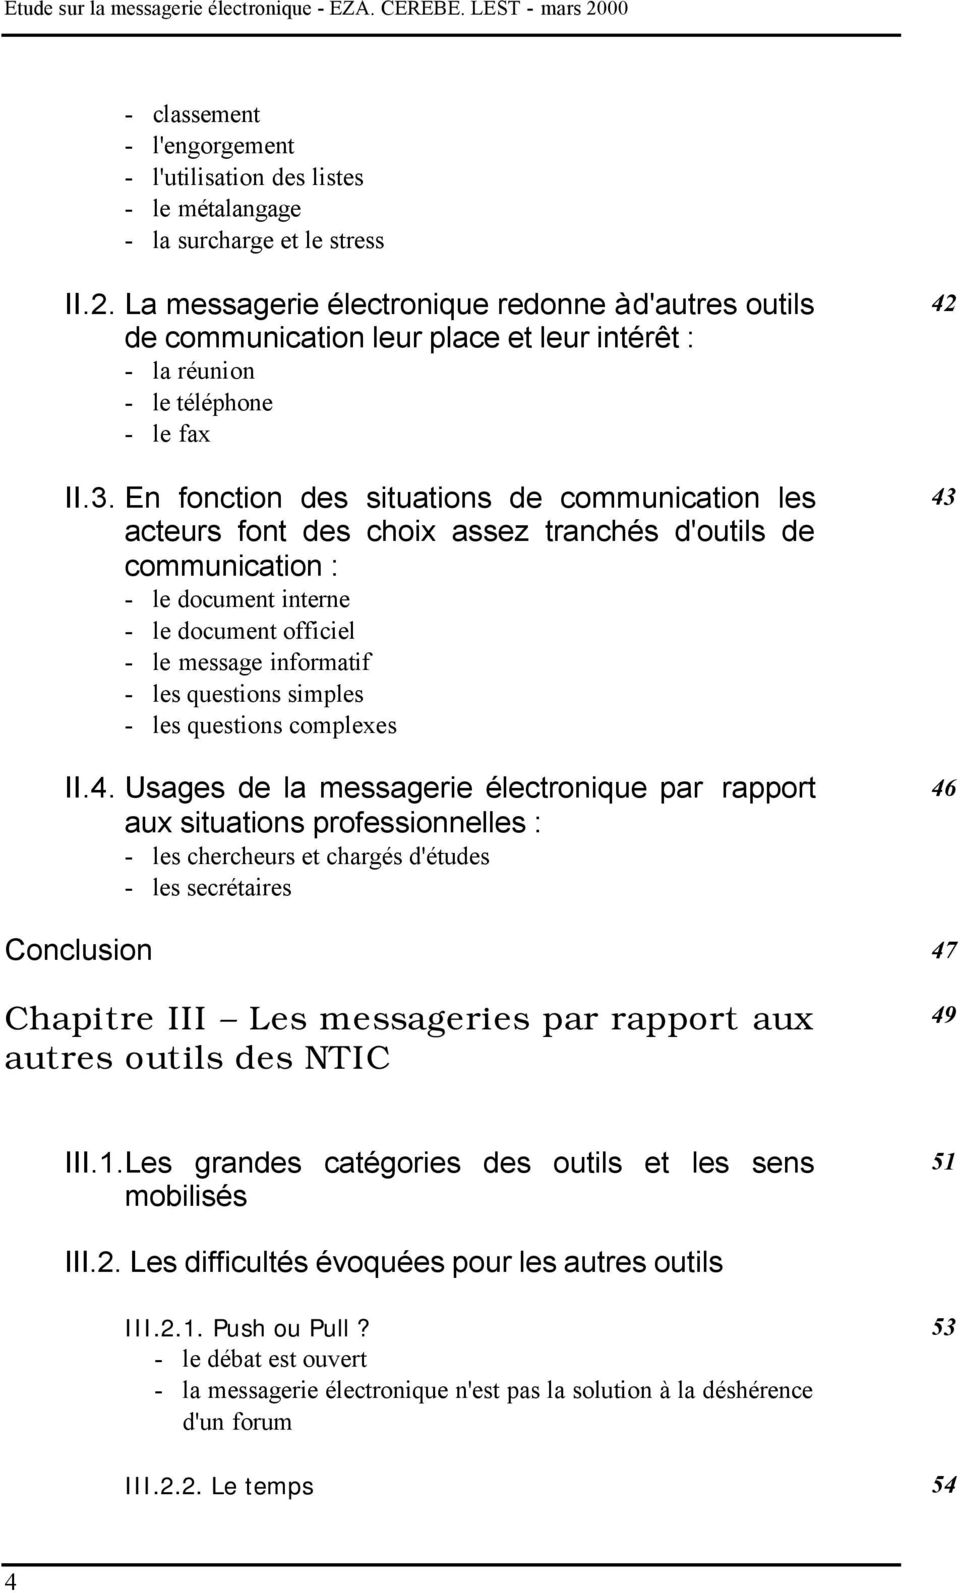 En fonction des situations de communication les acteurs font des choix assez tranchés d'outils de communication : - le document interne - le document officiel - le message informatif - les questions